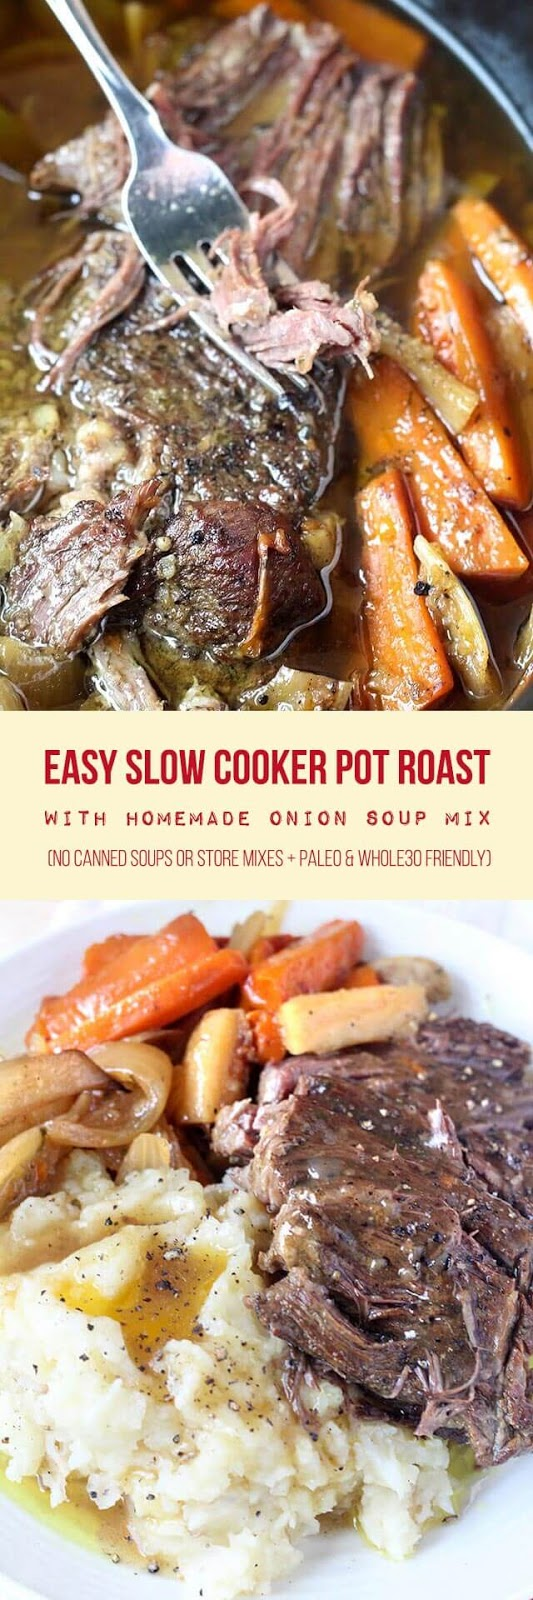 Fall-apart-tender pot roast cooked in the crock-pot with root vegetables and homemade onion soup mix. This super easy recipe takes about 20 minutes to prep and can be made in as little as 4-5 hours on the high setting. Serve with your favorite mashed potatoes for the best comforting meal.